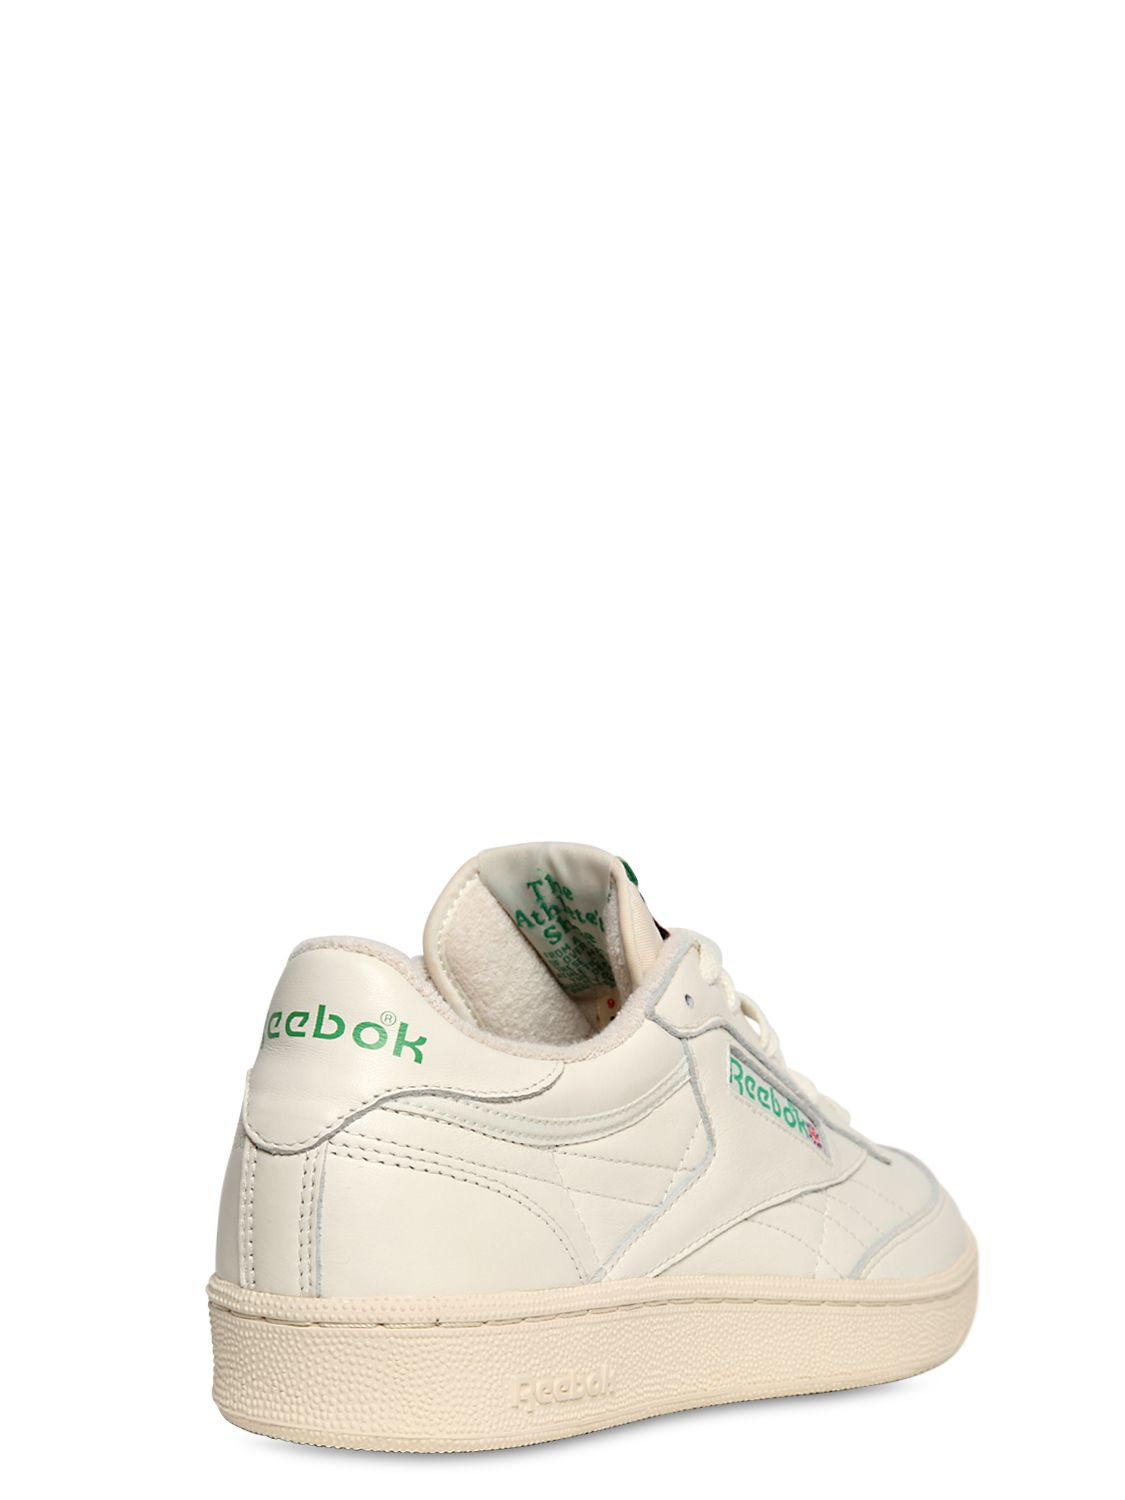 aefa2e2de470 Reebok Club C 85 Vintage Leather Low-Top Sneakers in White for Men - Lyst